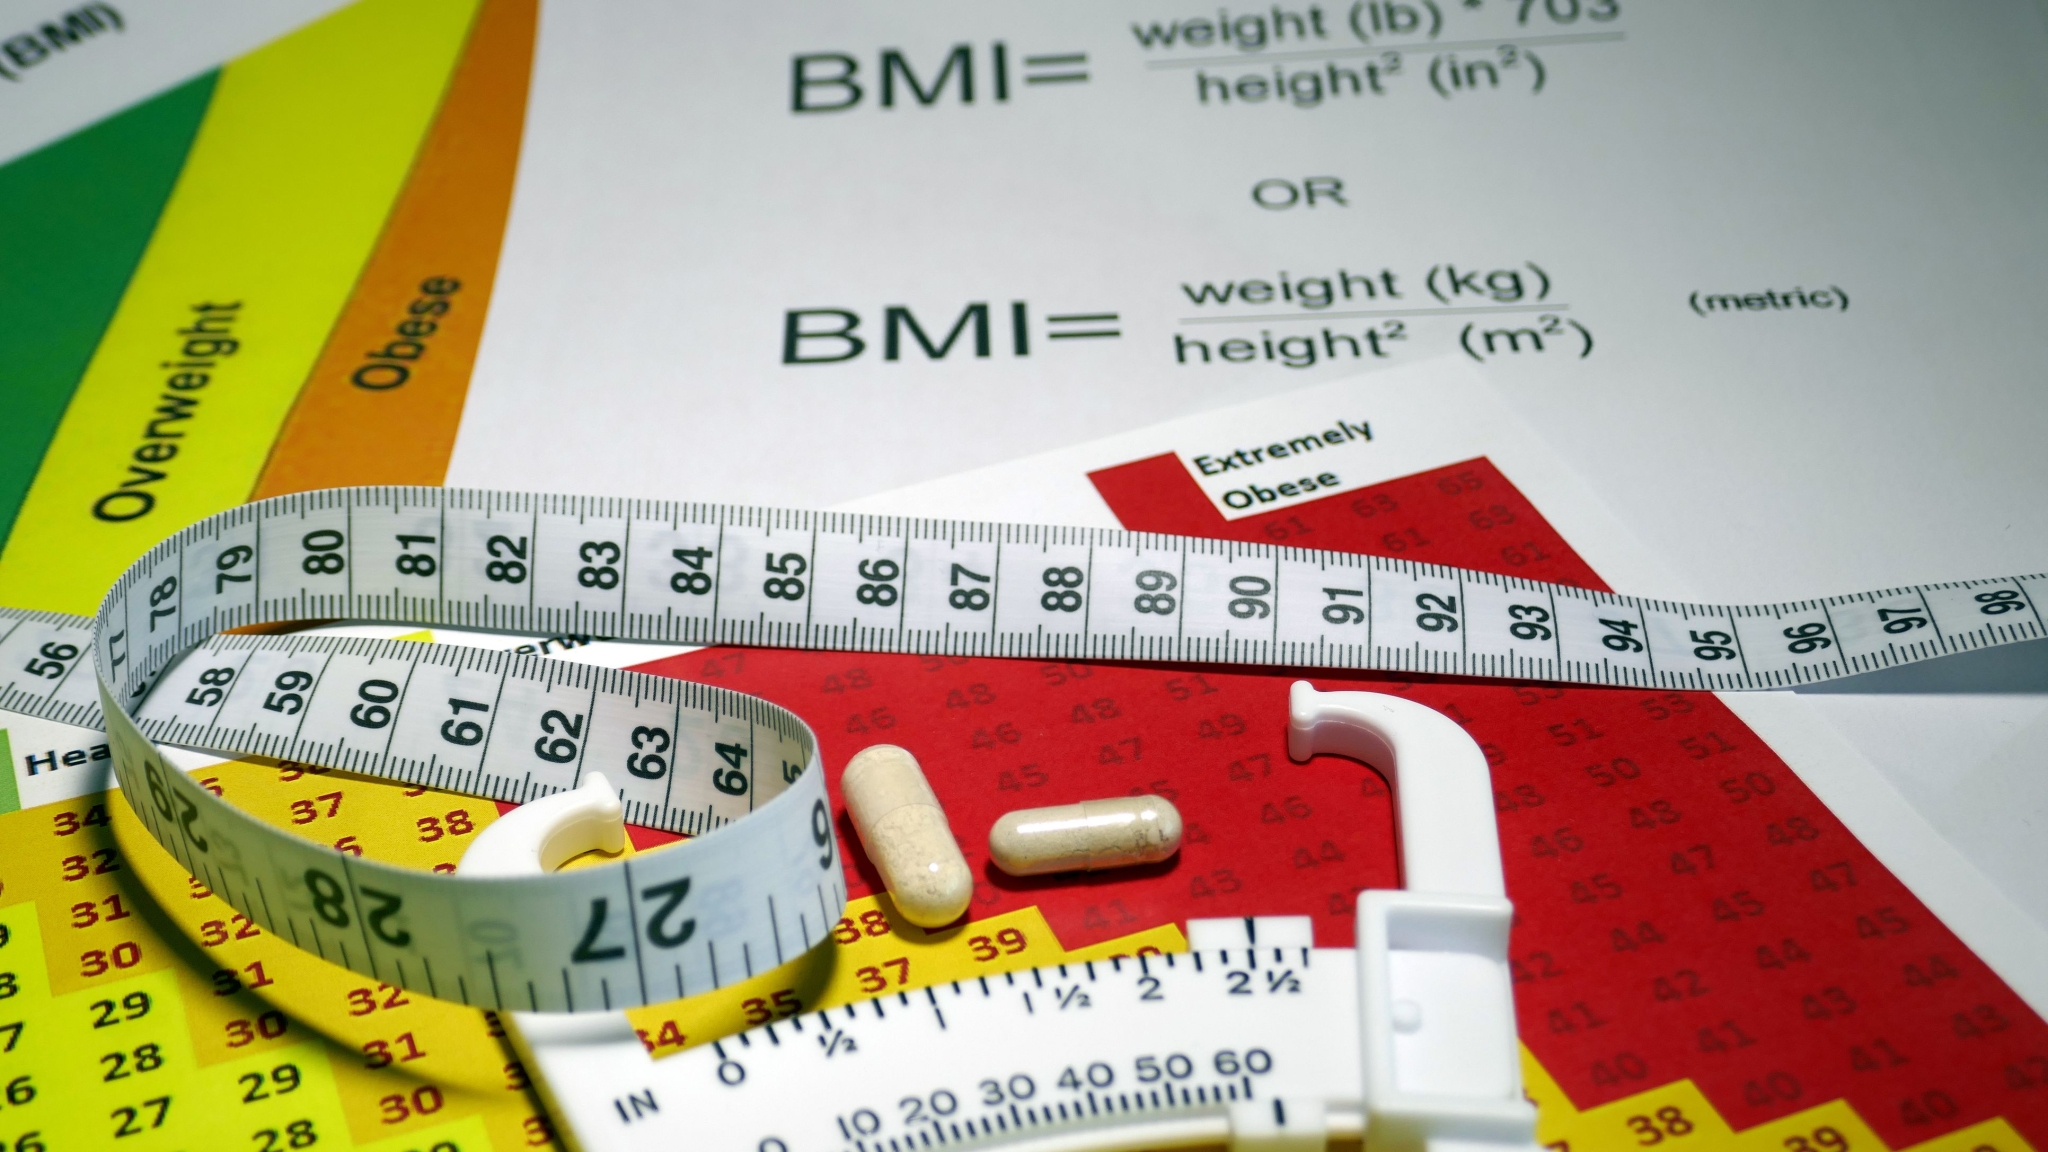 Fat Mass Index (Not BMI) Indicator of Heart Disease in Diabetics